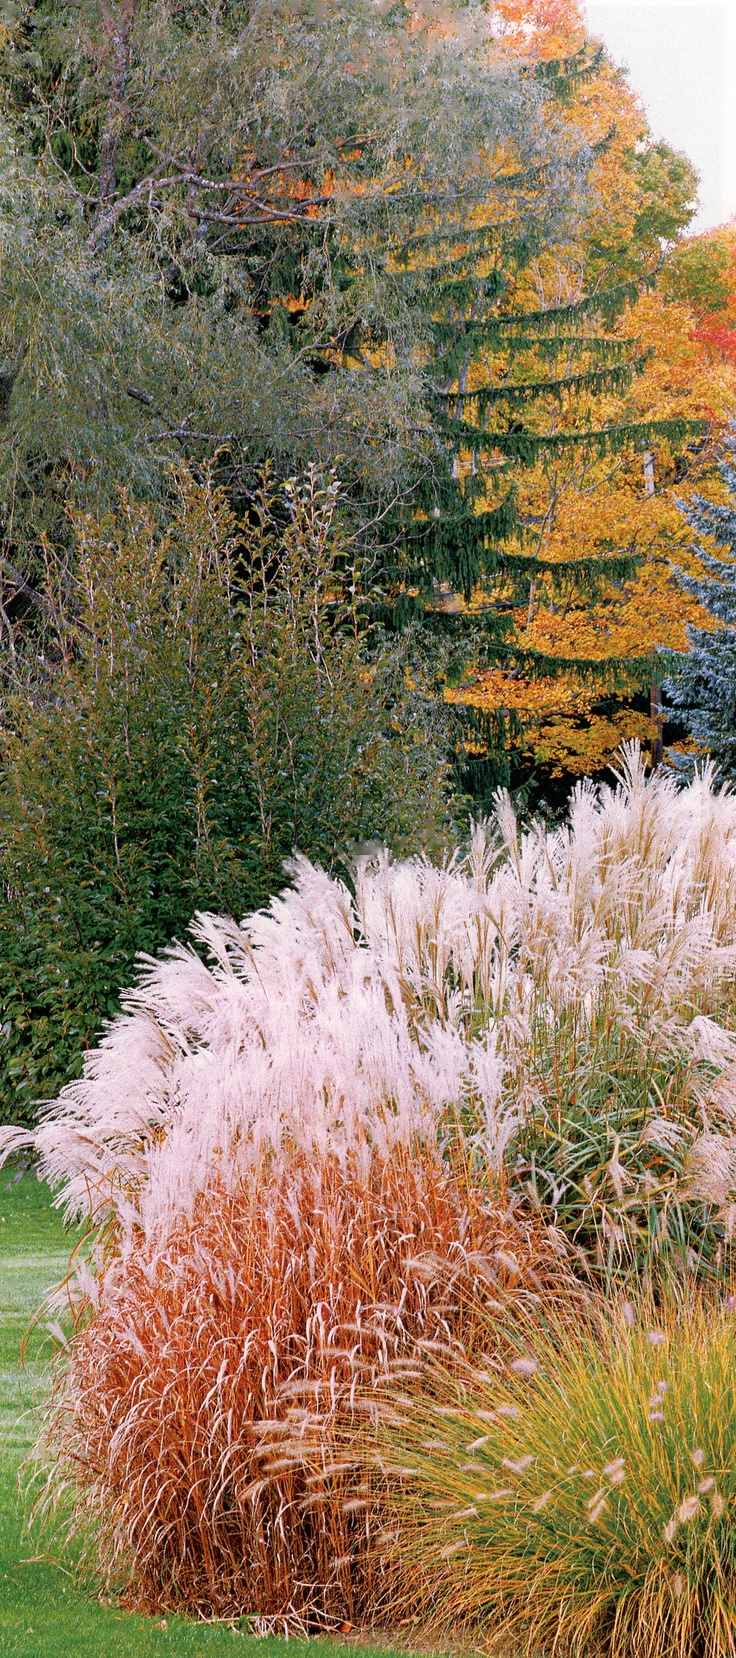 Miscanthus and pennisetum